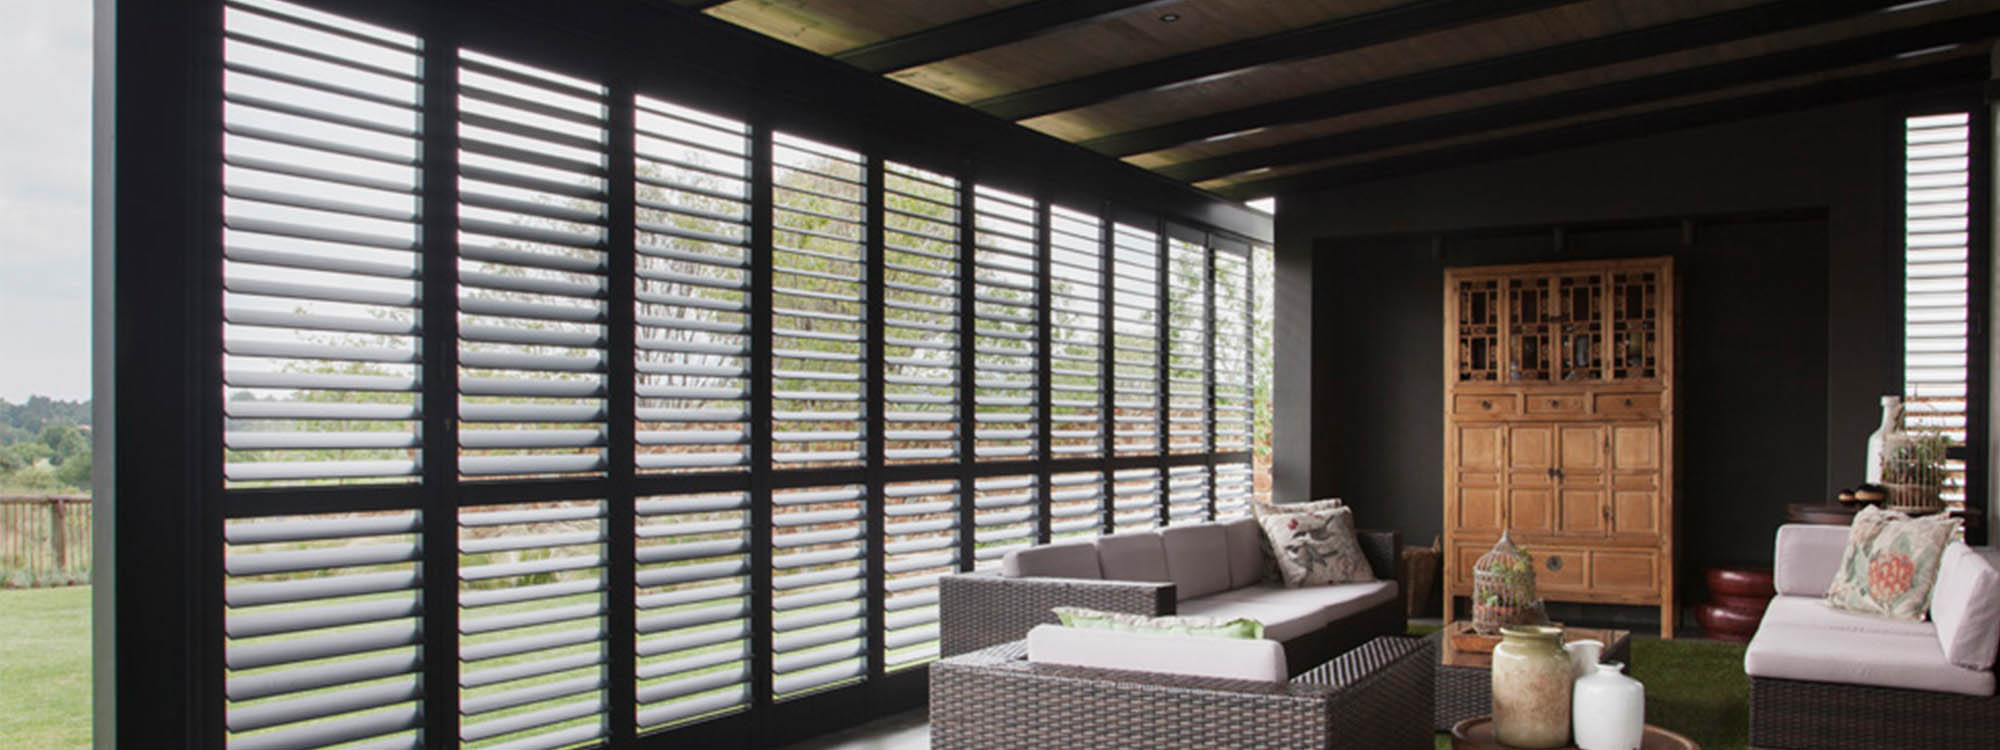 Security-shutters-living-area-